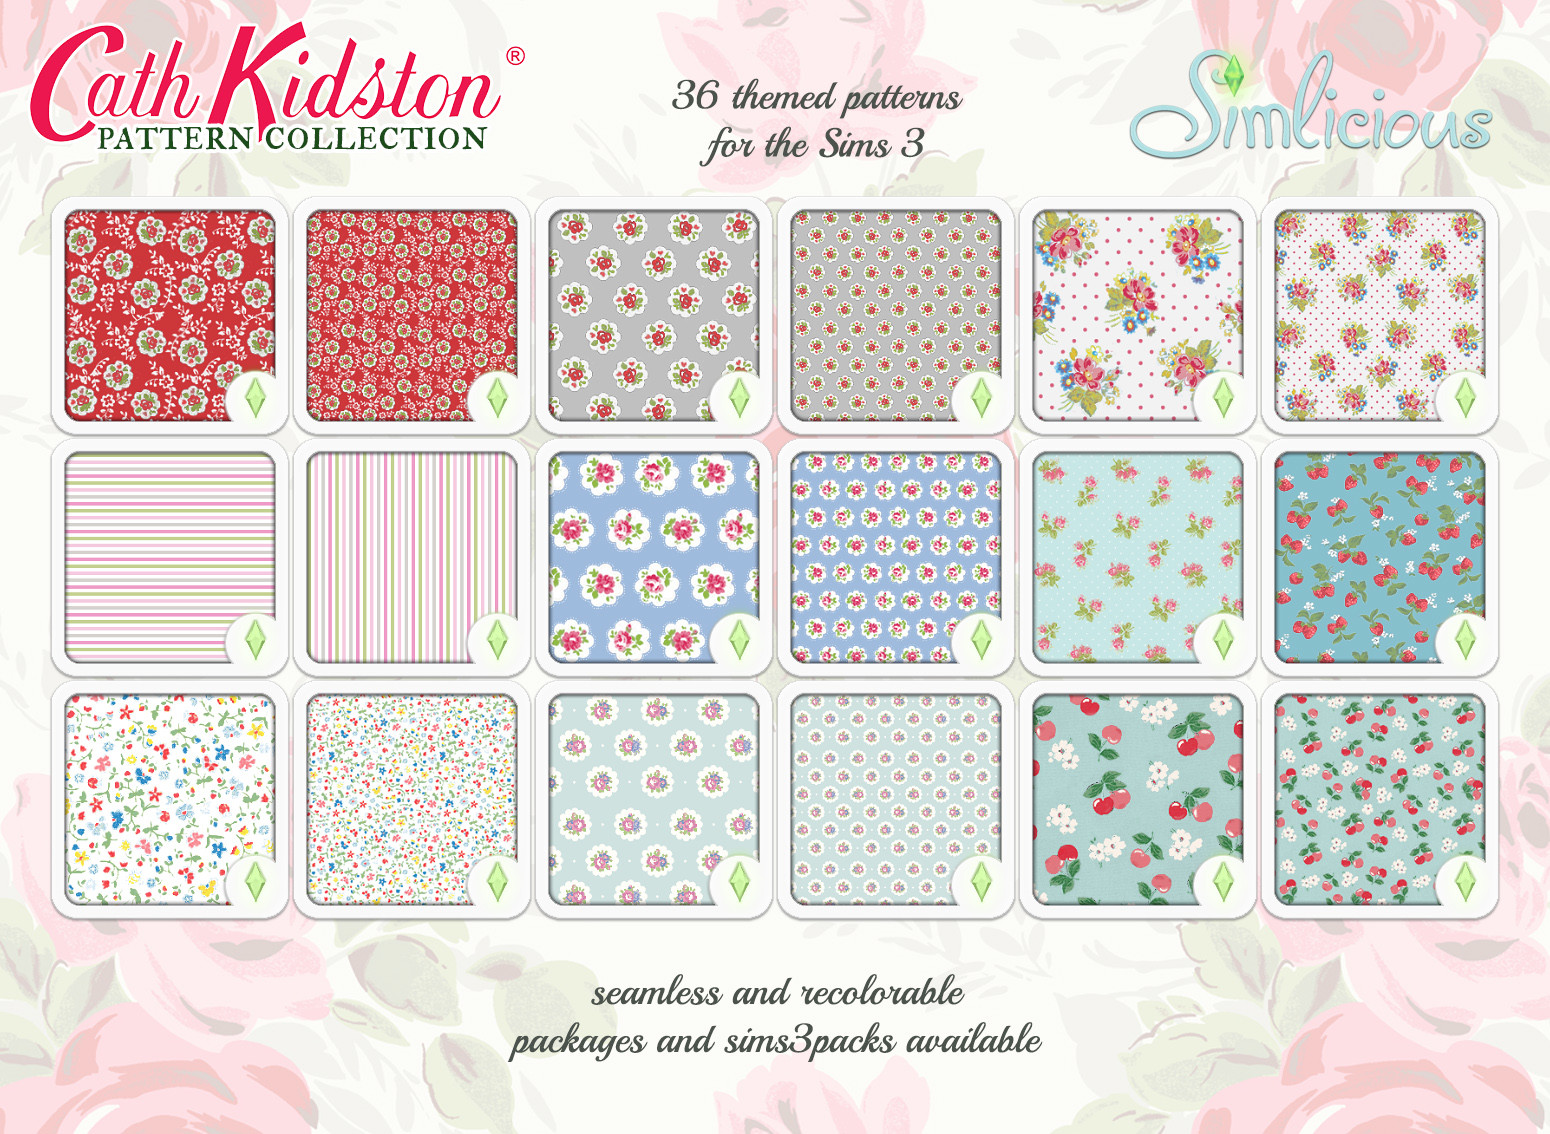 Cath Kidston Pattern Collection Custom Content For The